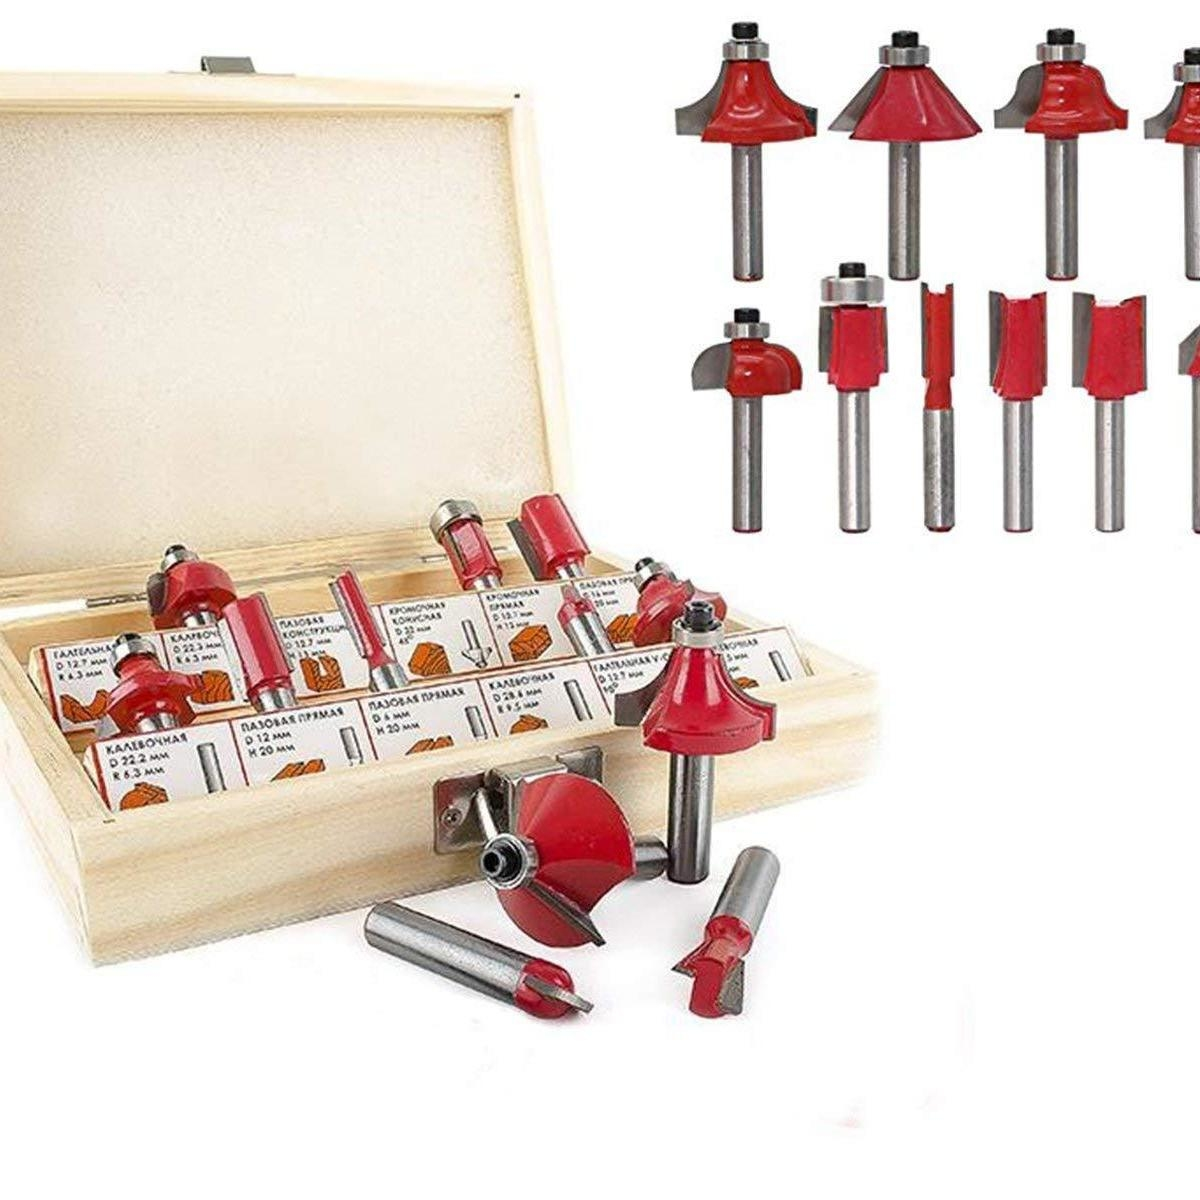 1215pcs Milling Cutter Router Bit Set